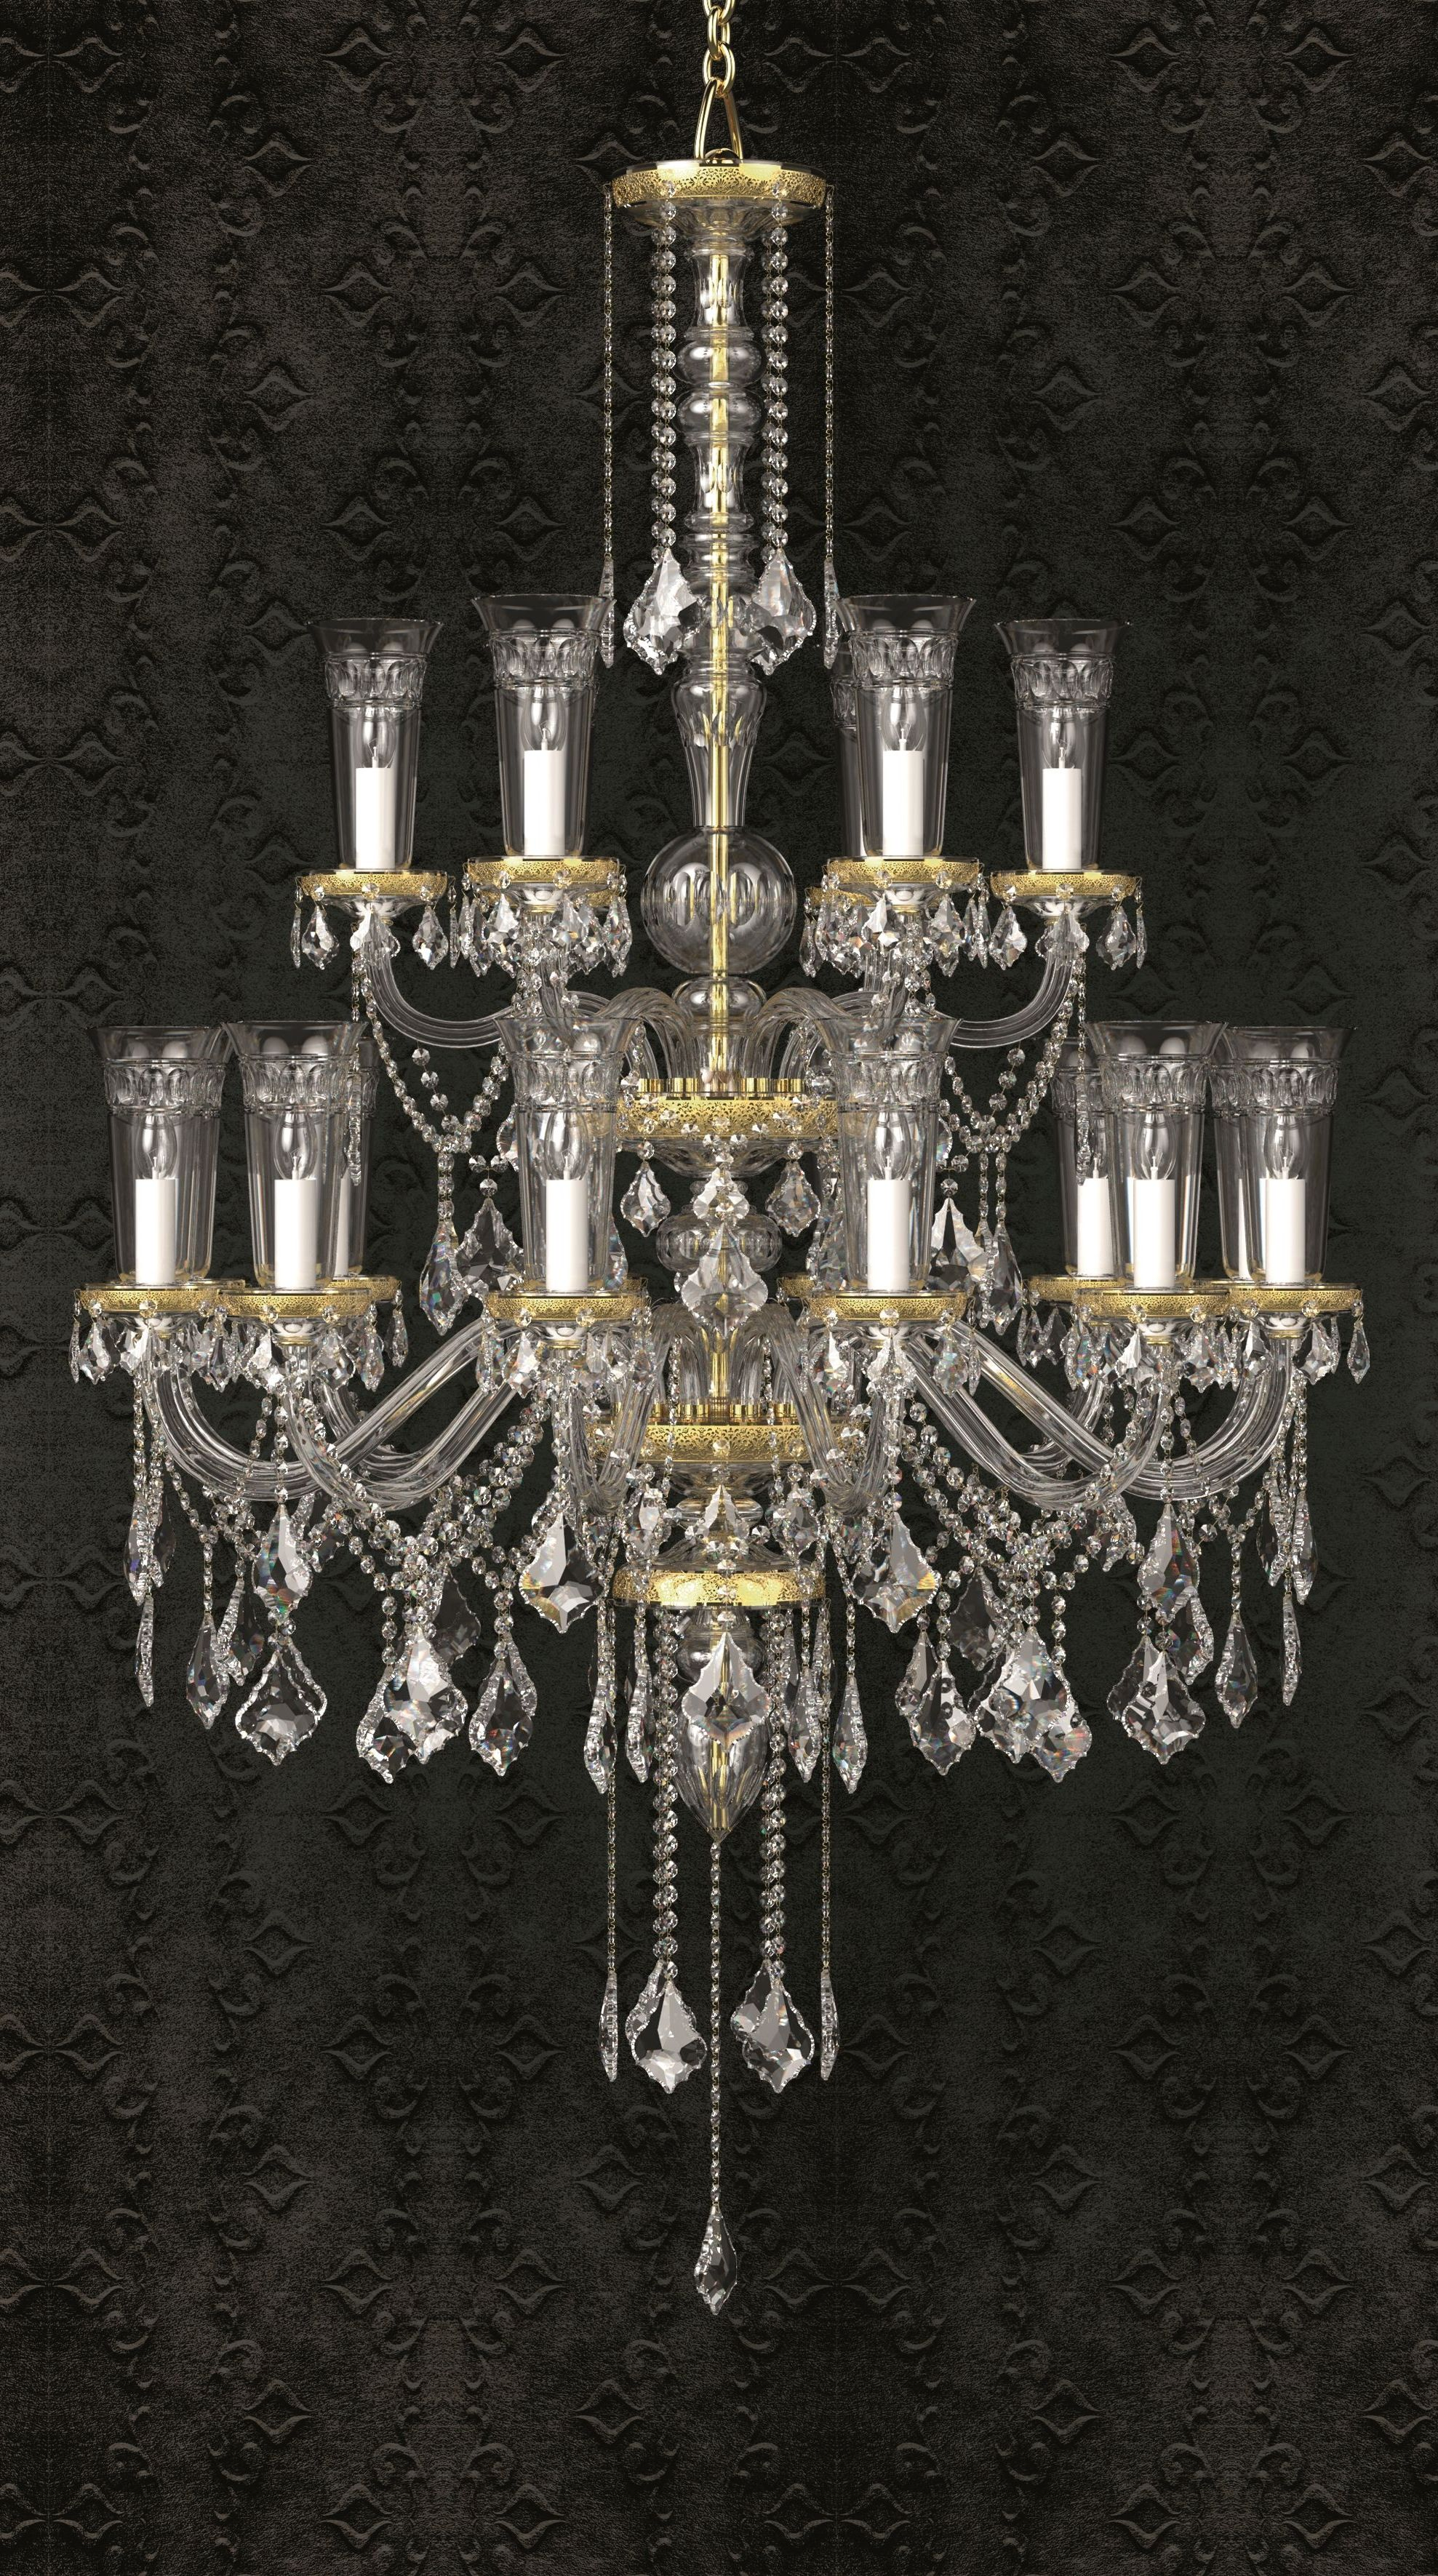 Luxury dinastia chandelier with gold painted bowls to cherish explore aysans most recent aurora collection luxurious chandeliers wall lights and table lamps designed specifically for projects of palaces arubaitofo Image collections